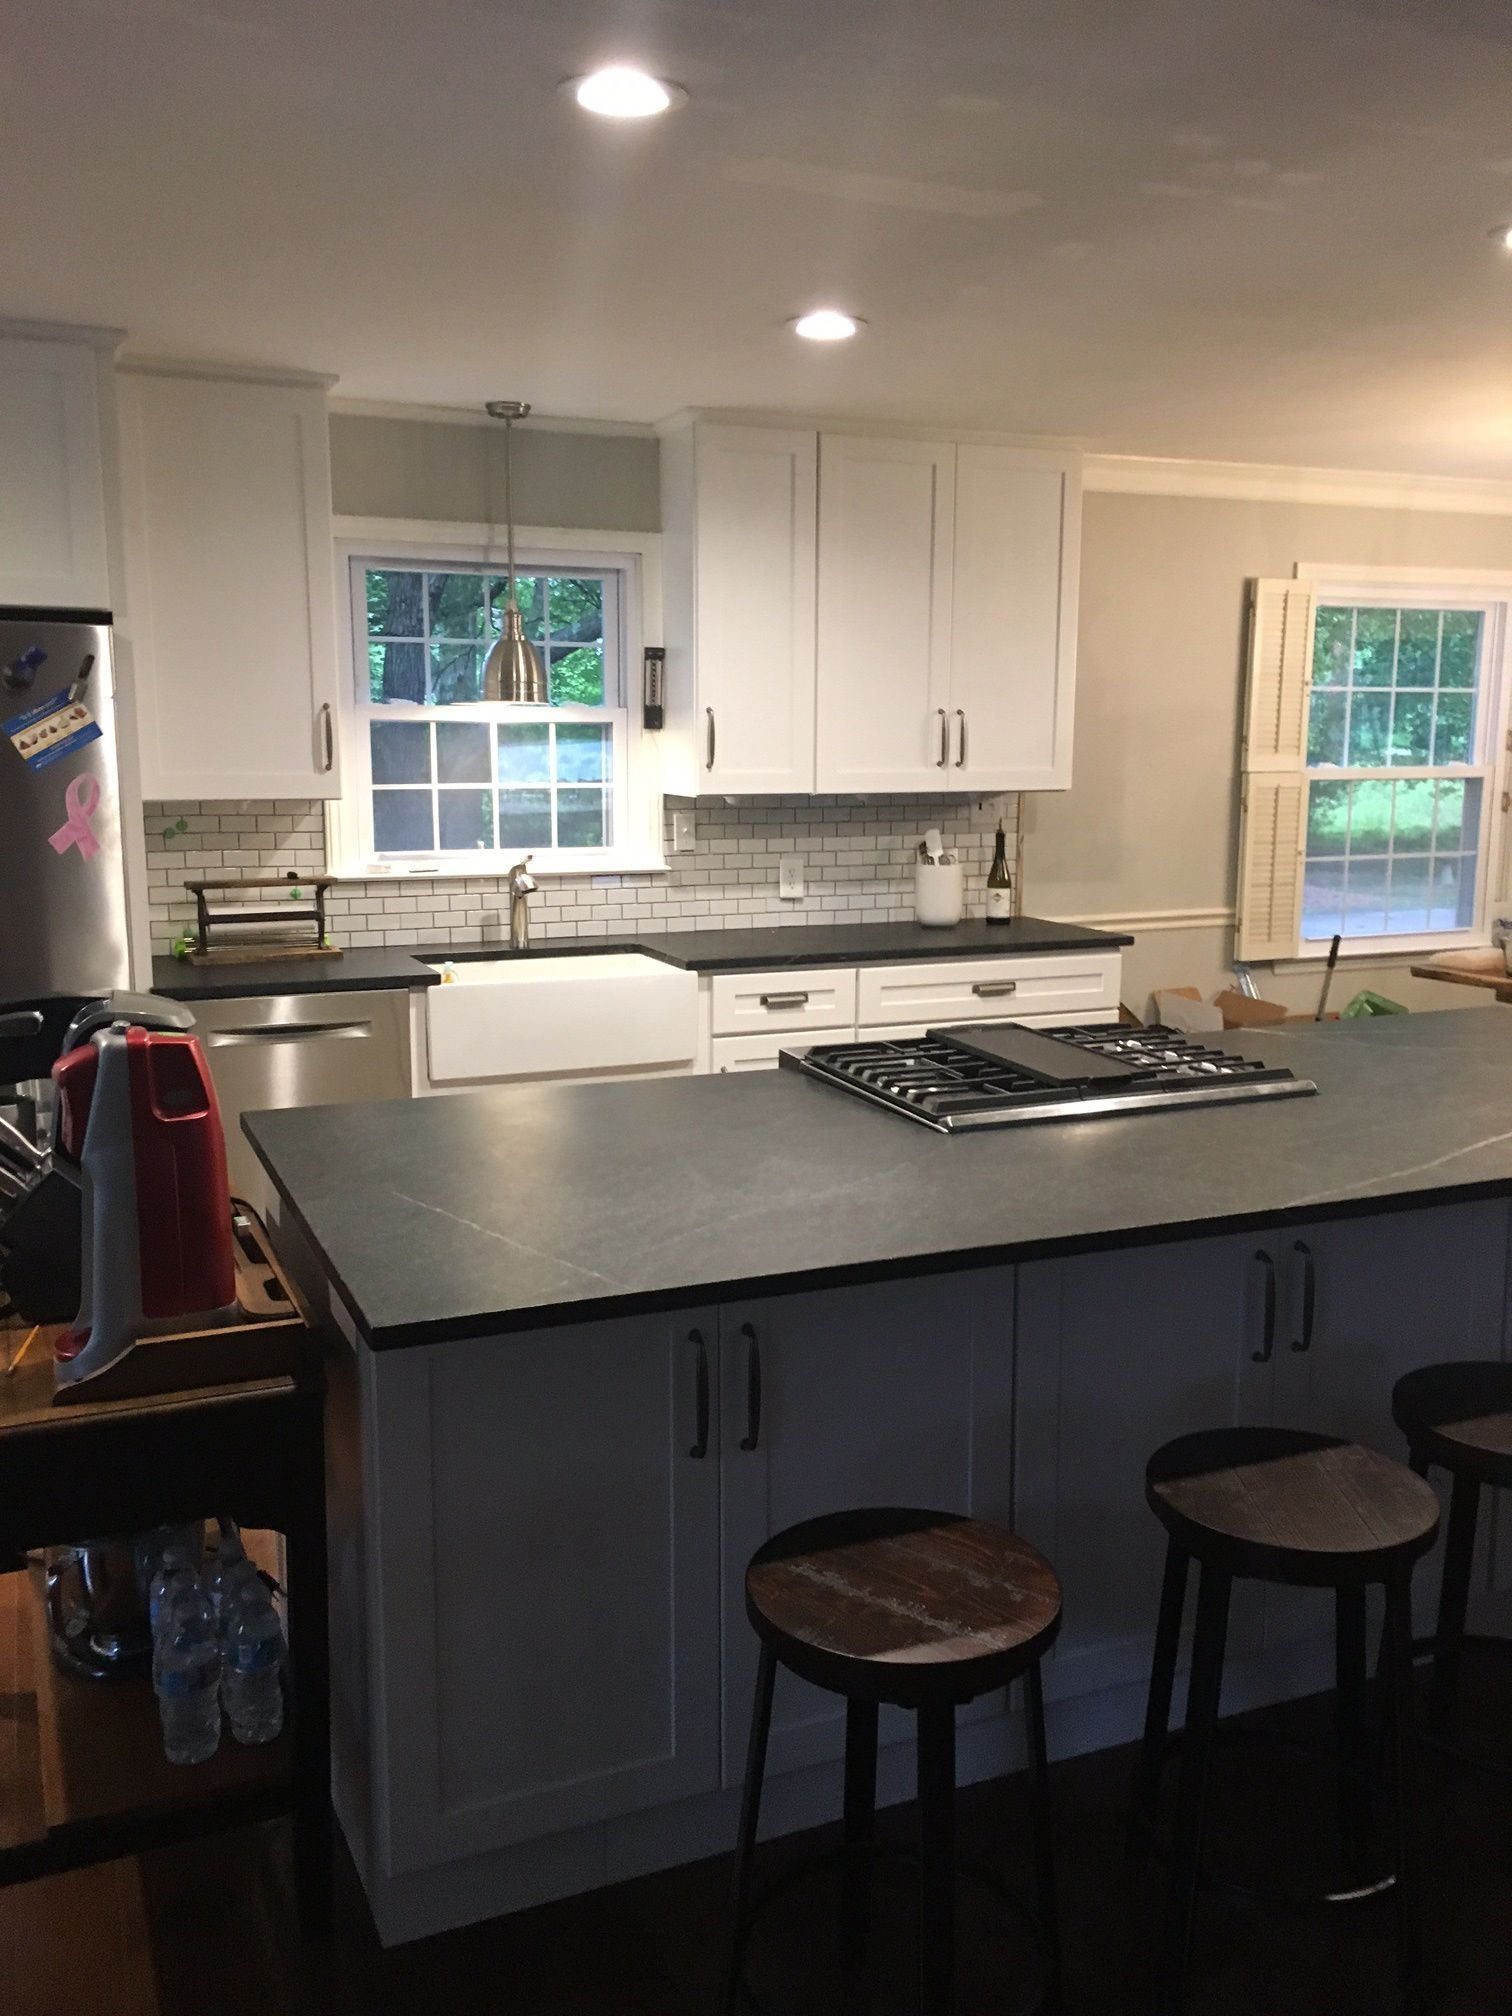 Kitchen Remodel By Lois W Of Durham Nc We Gutted An Old Galley Kitchen With Harvest Gold Appliances And Added All New Cabinets From Surplus Warehouse Rincon